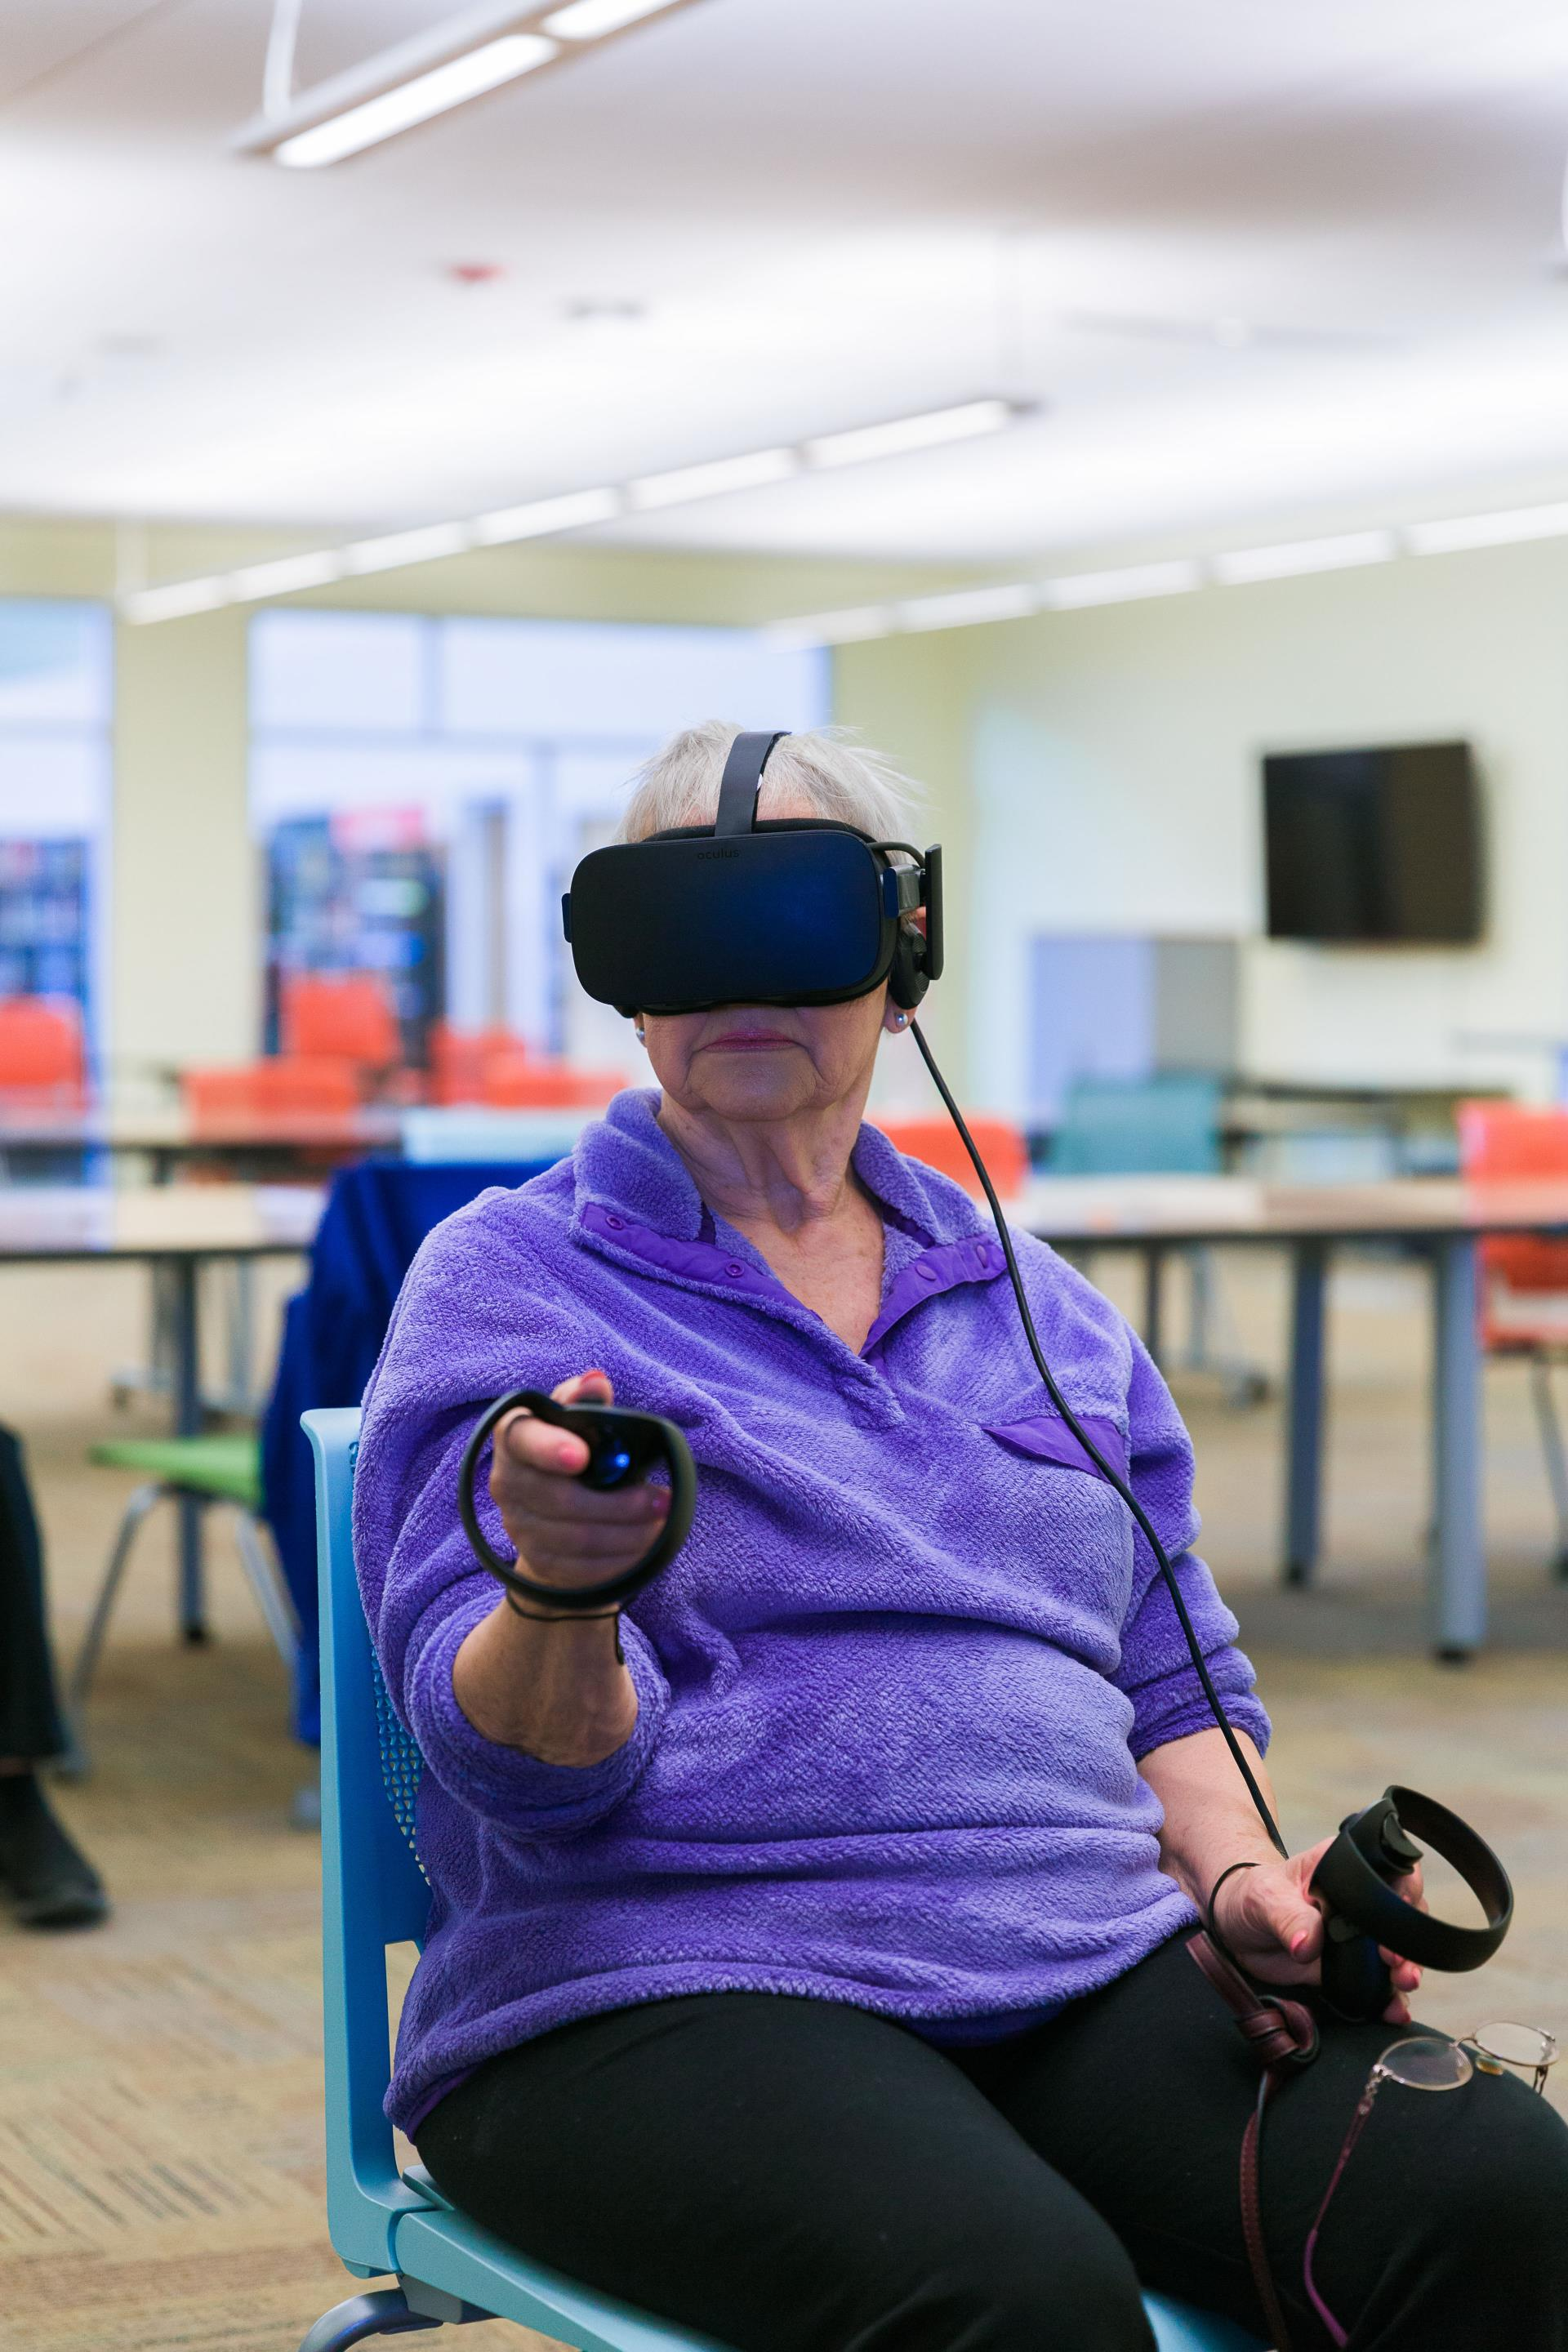 Woman using virtual reality headset and controllers